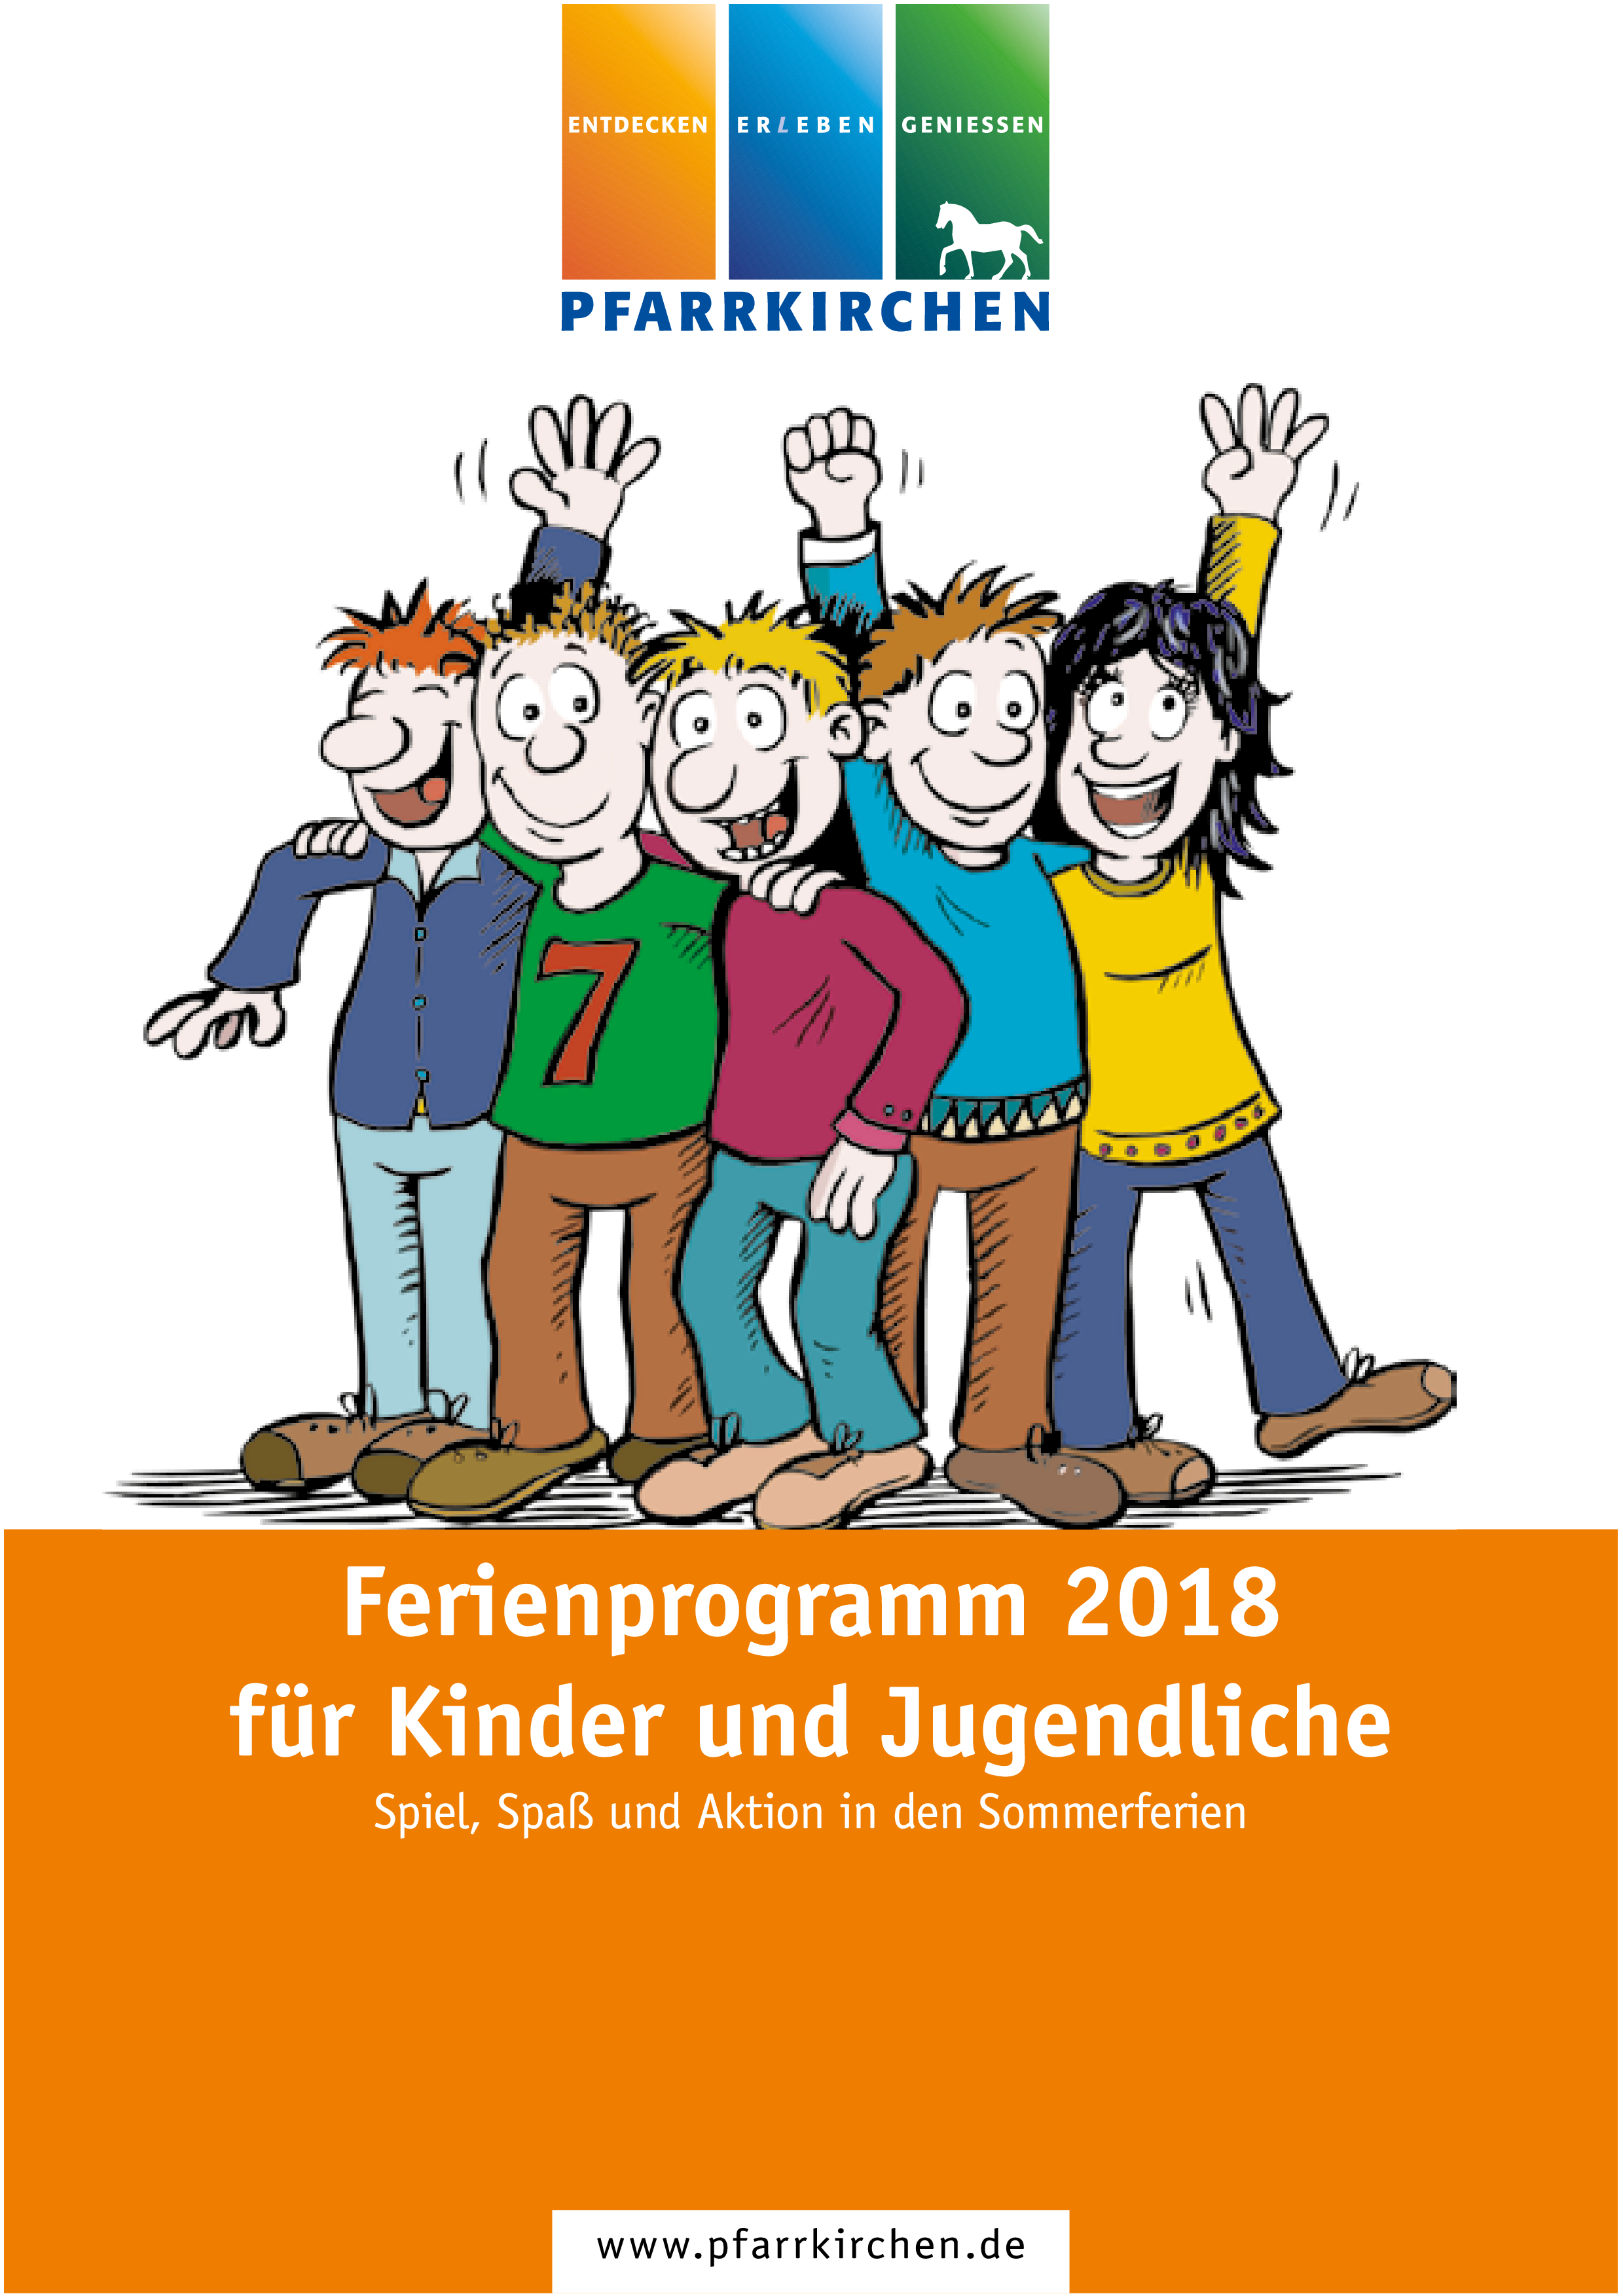 tl_files/images/Kinderferienprogramm/KFT_Pfarrkirchen2018_web (002).png